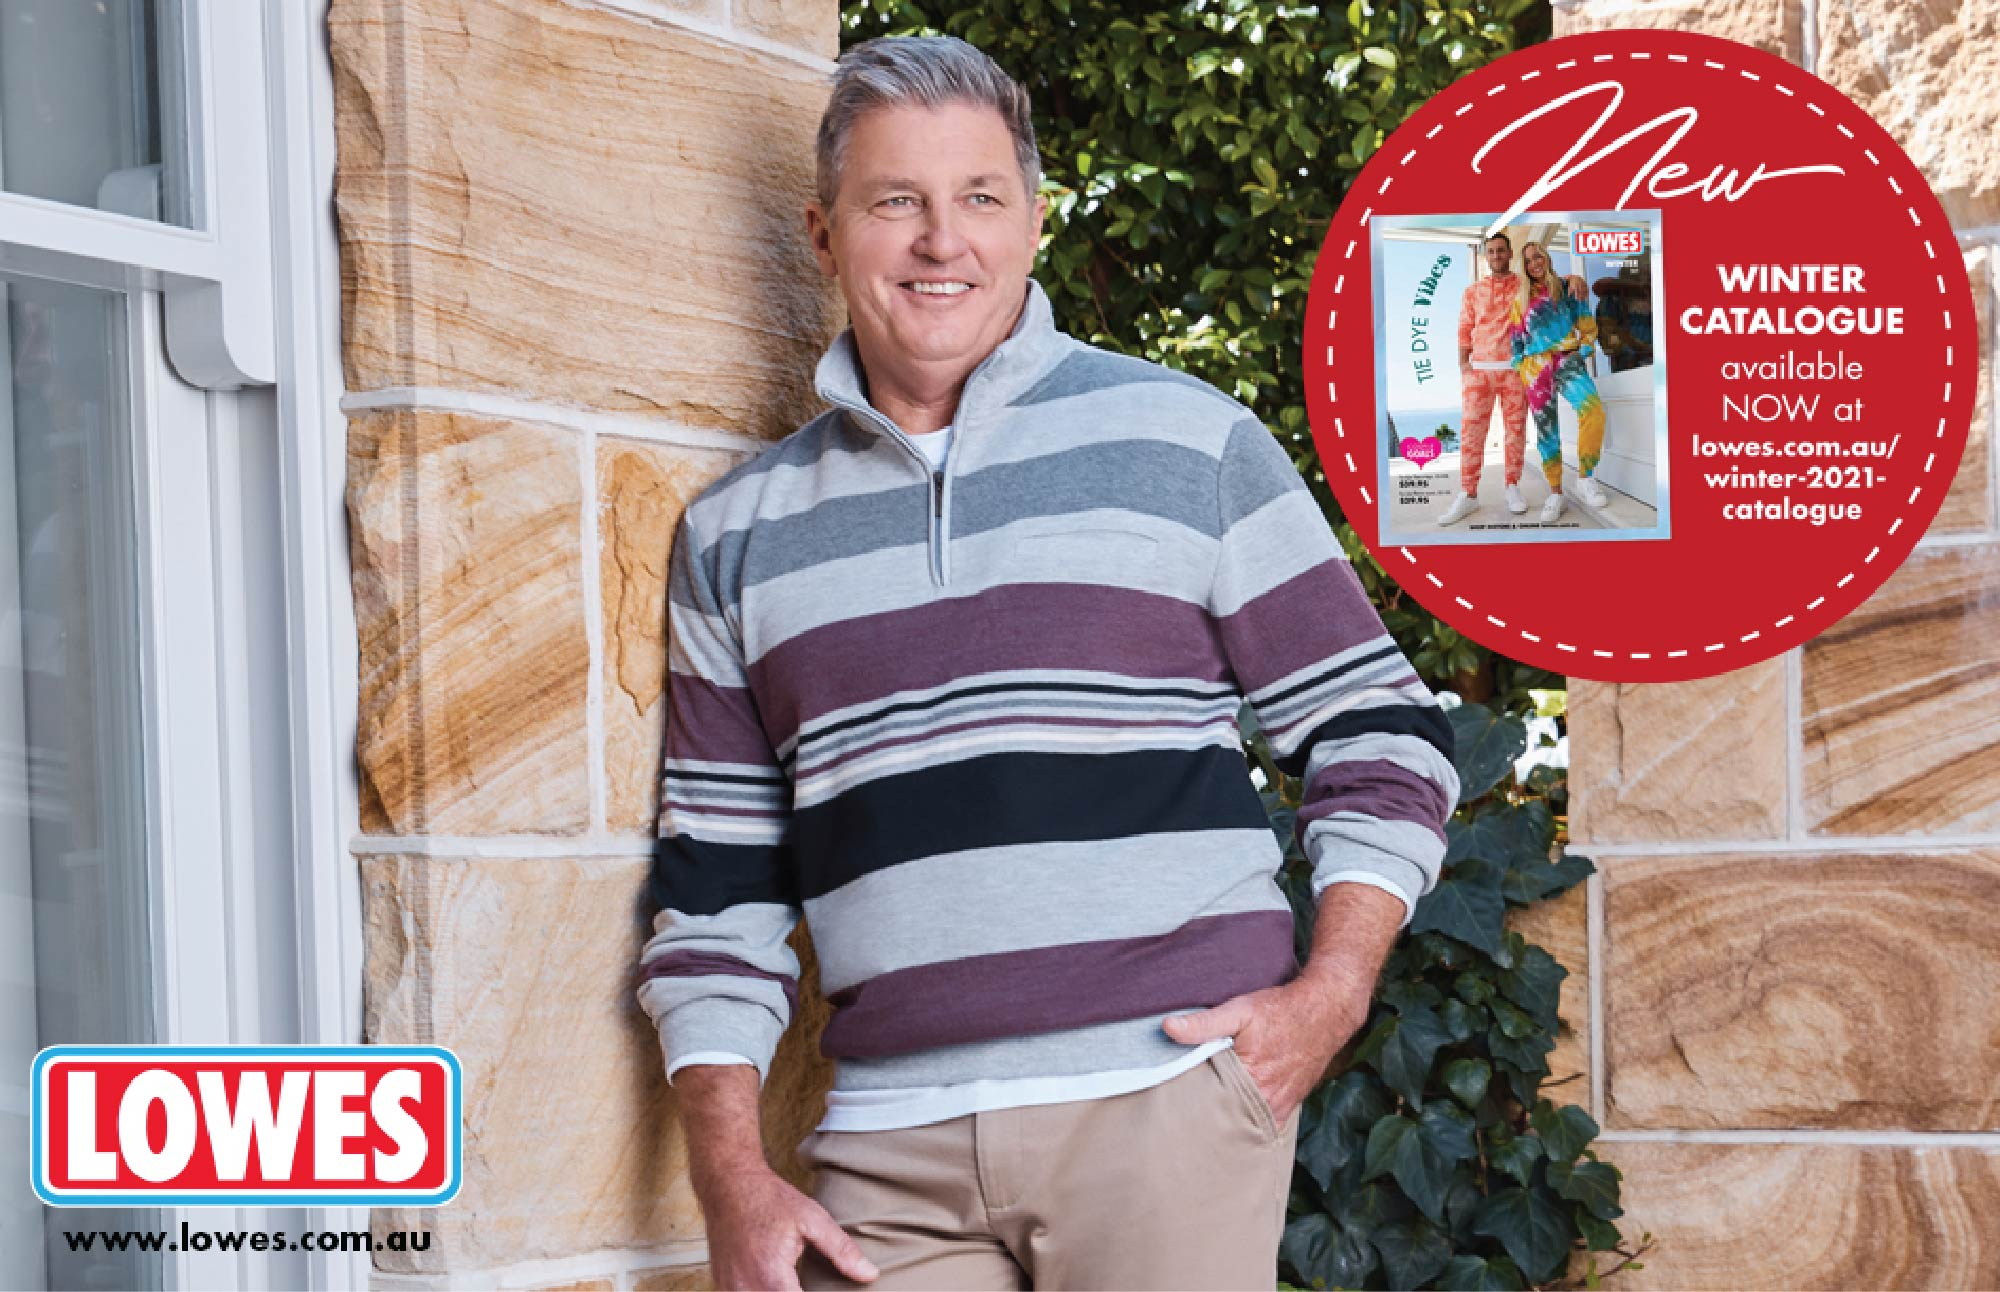 Check out the Lowes Winter Catalogue